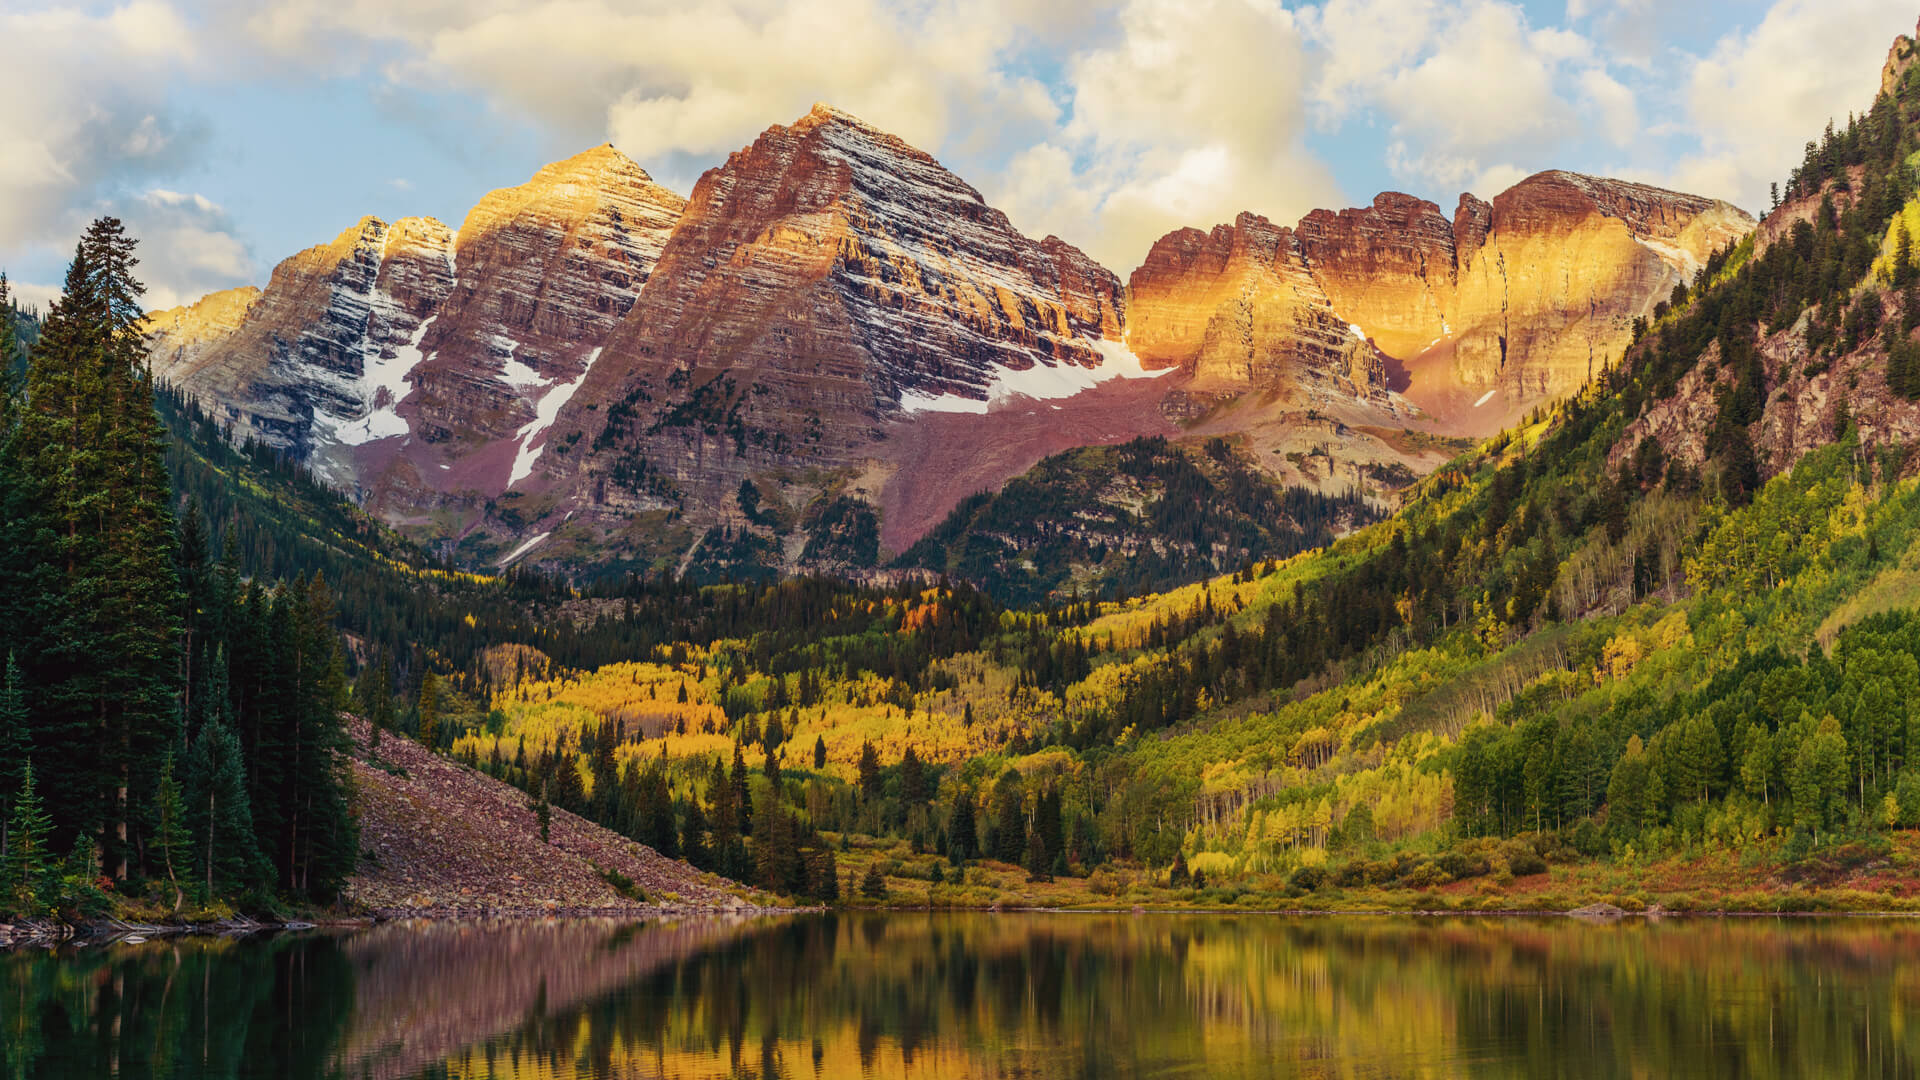 Maroon Bells peaks and Lake at Sunrise, Colorado, USA.